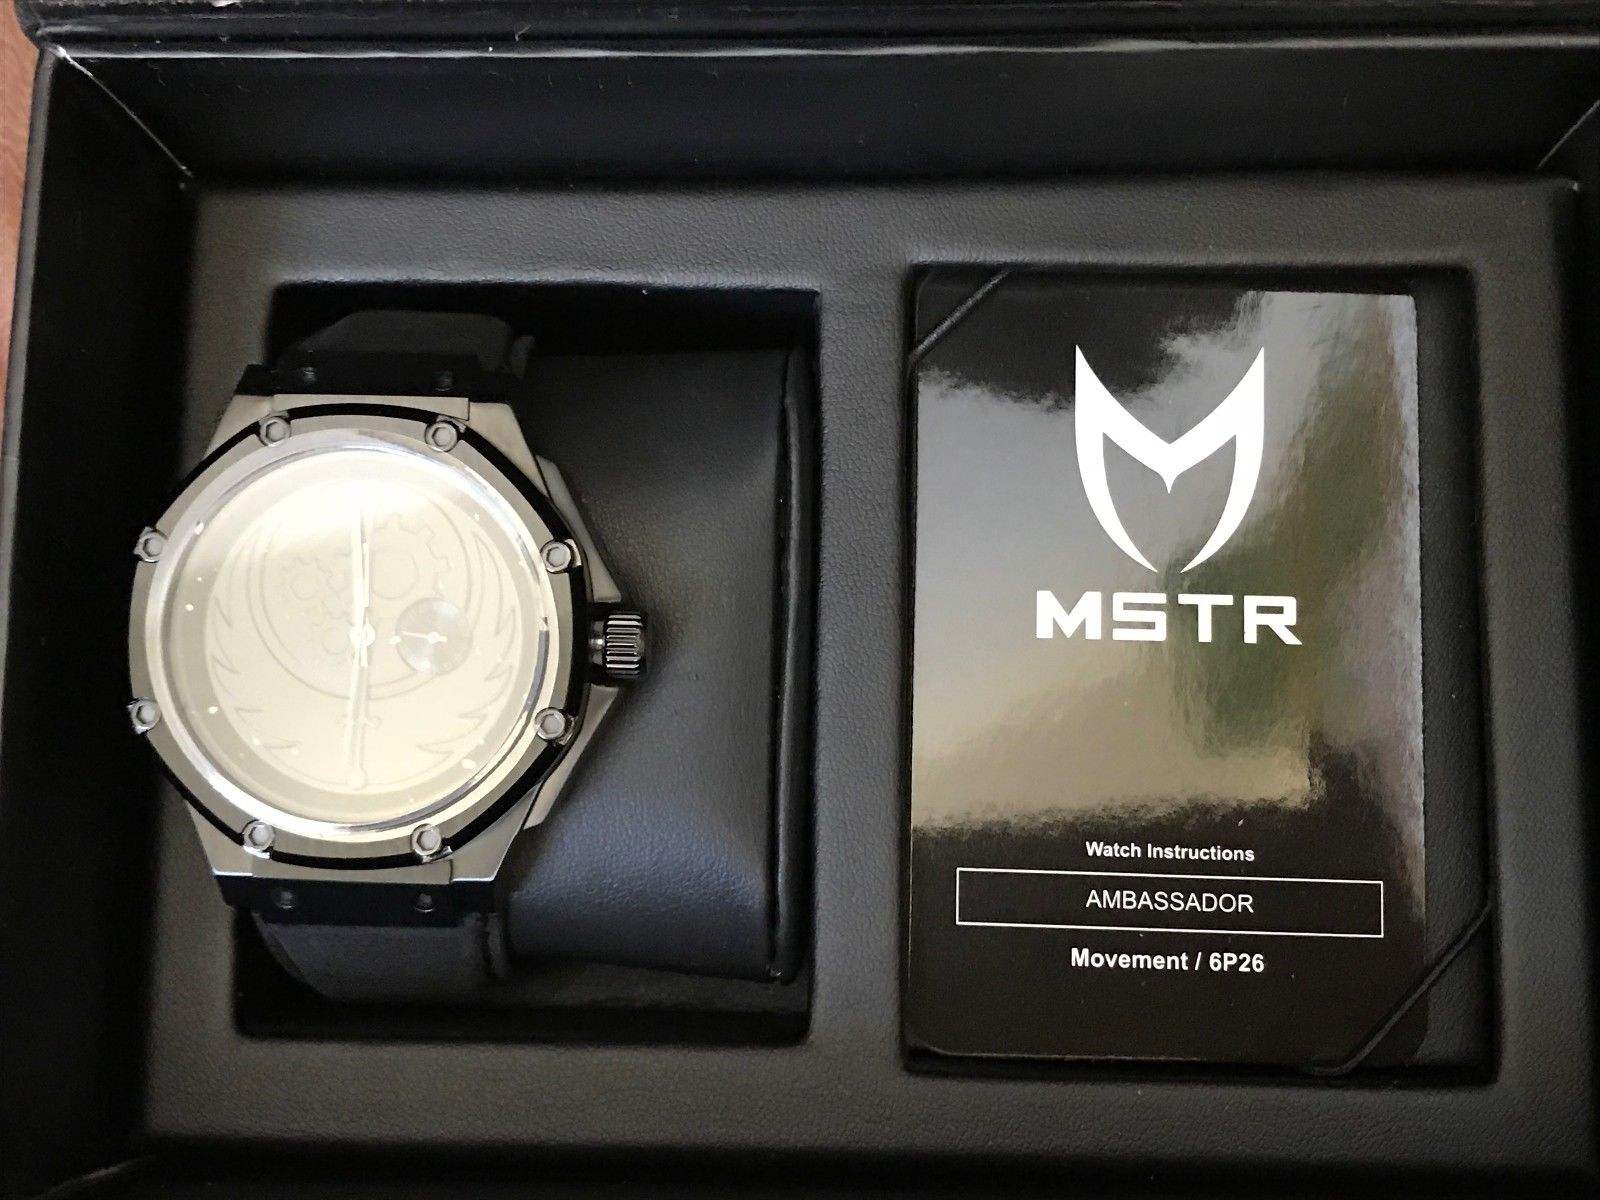 OFFICIAL Fallout BROTHERHOOD OF STEEL WATCH LIMITED 500 RARE Bethesda Softworks MSTR Meister